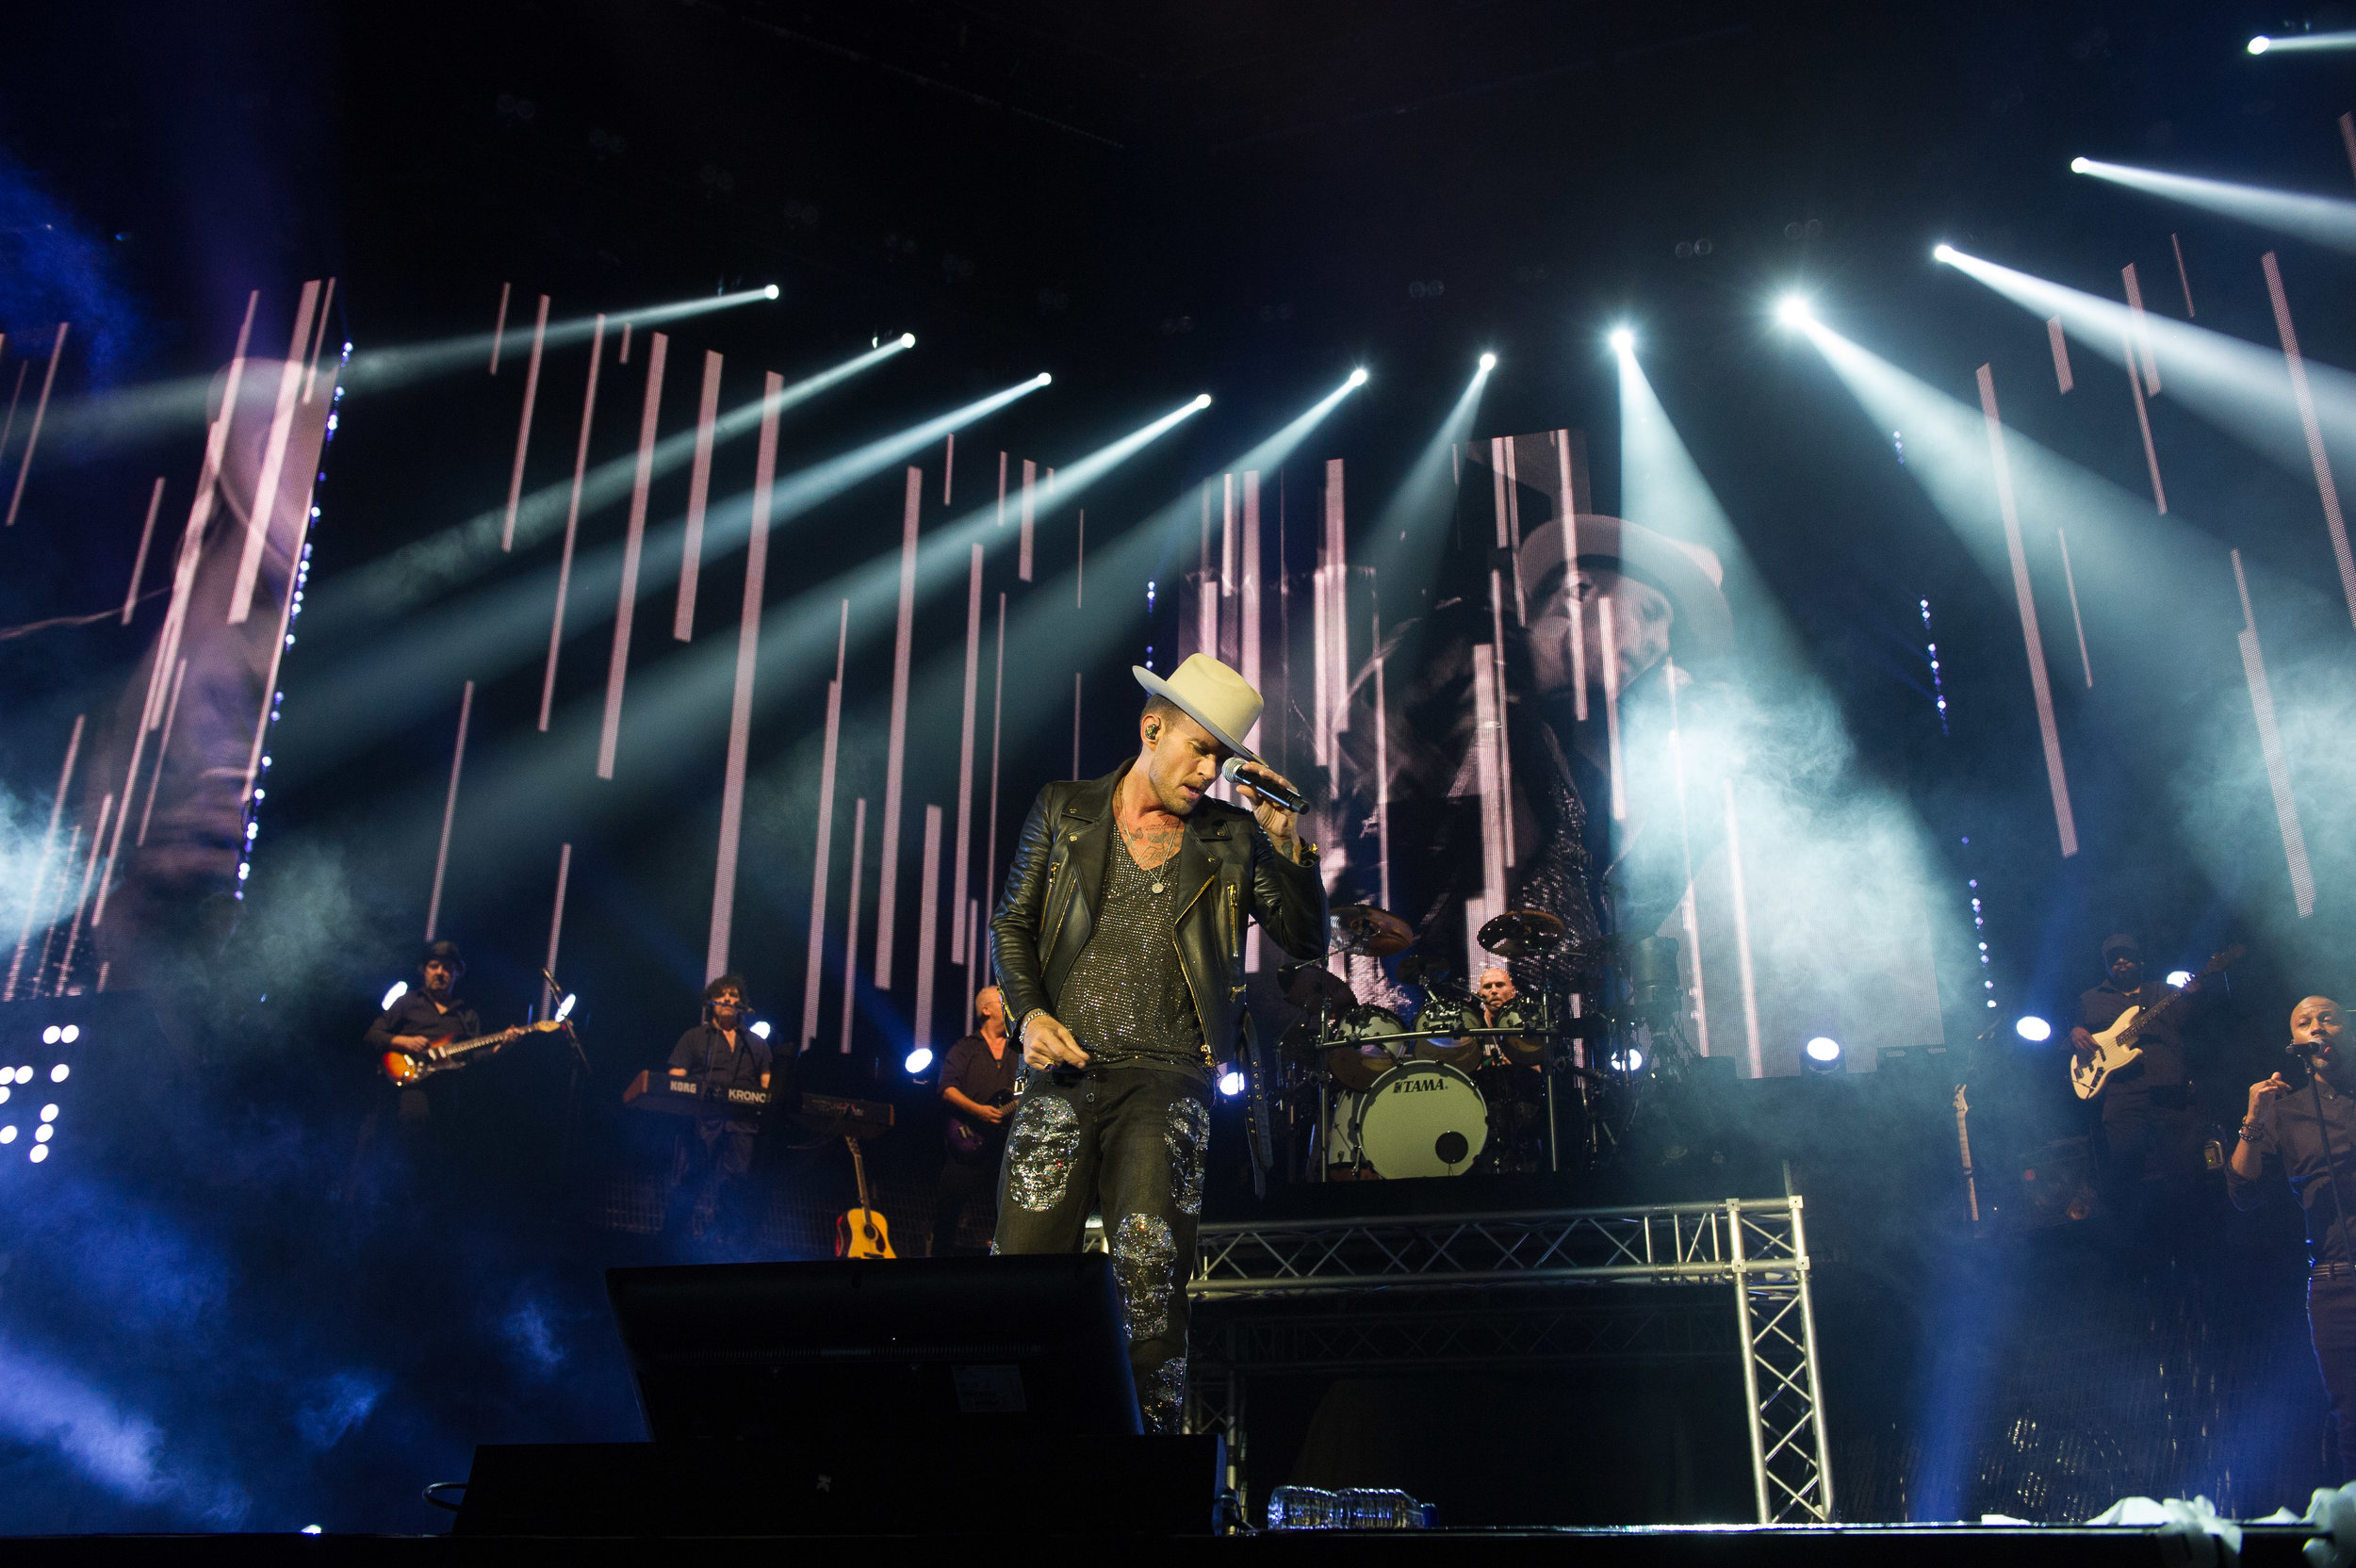 Brothers Matt Goss and Luke Goss reunite as Bros for two nights at the O2 Arena in London